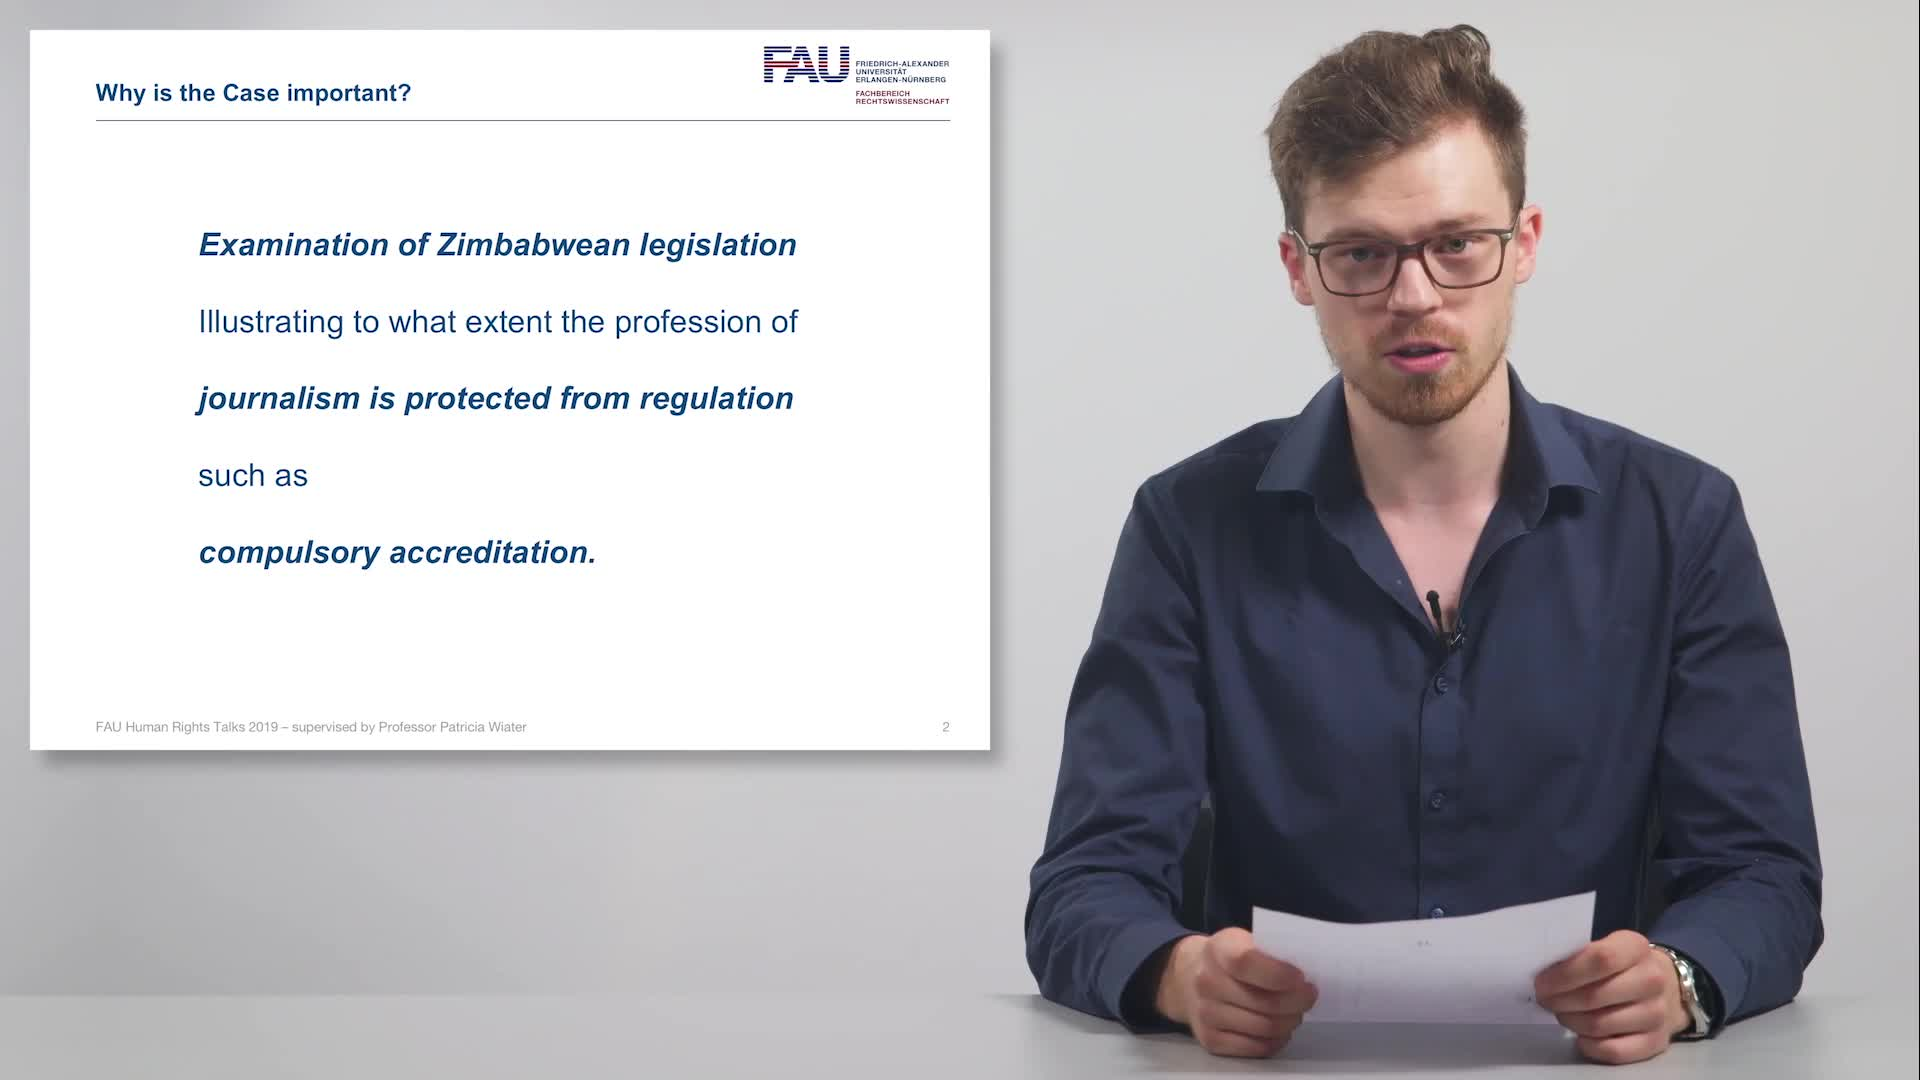 FAU Human Rights Talks – Summer Term 2019: Scanlen & Holderness v. Zimbabwe preview image